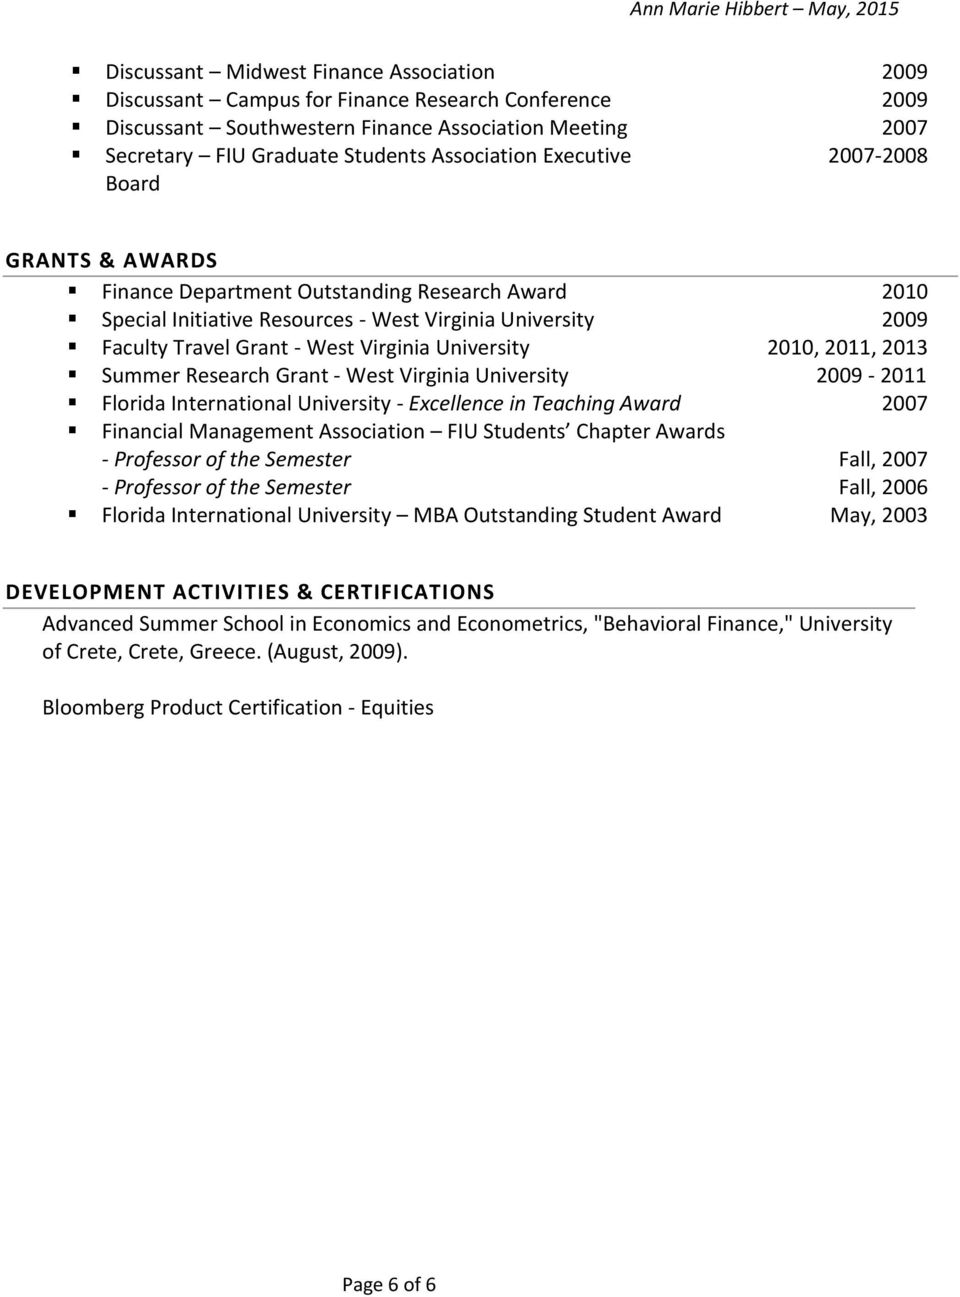 University 2010, 2011, 2013 Summer Research Grant - West Virginia University 2009-2011 Florida International University - Excellence in Teaching Award 2007 Financial Management Association FIU